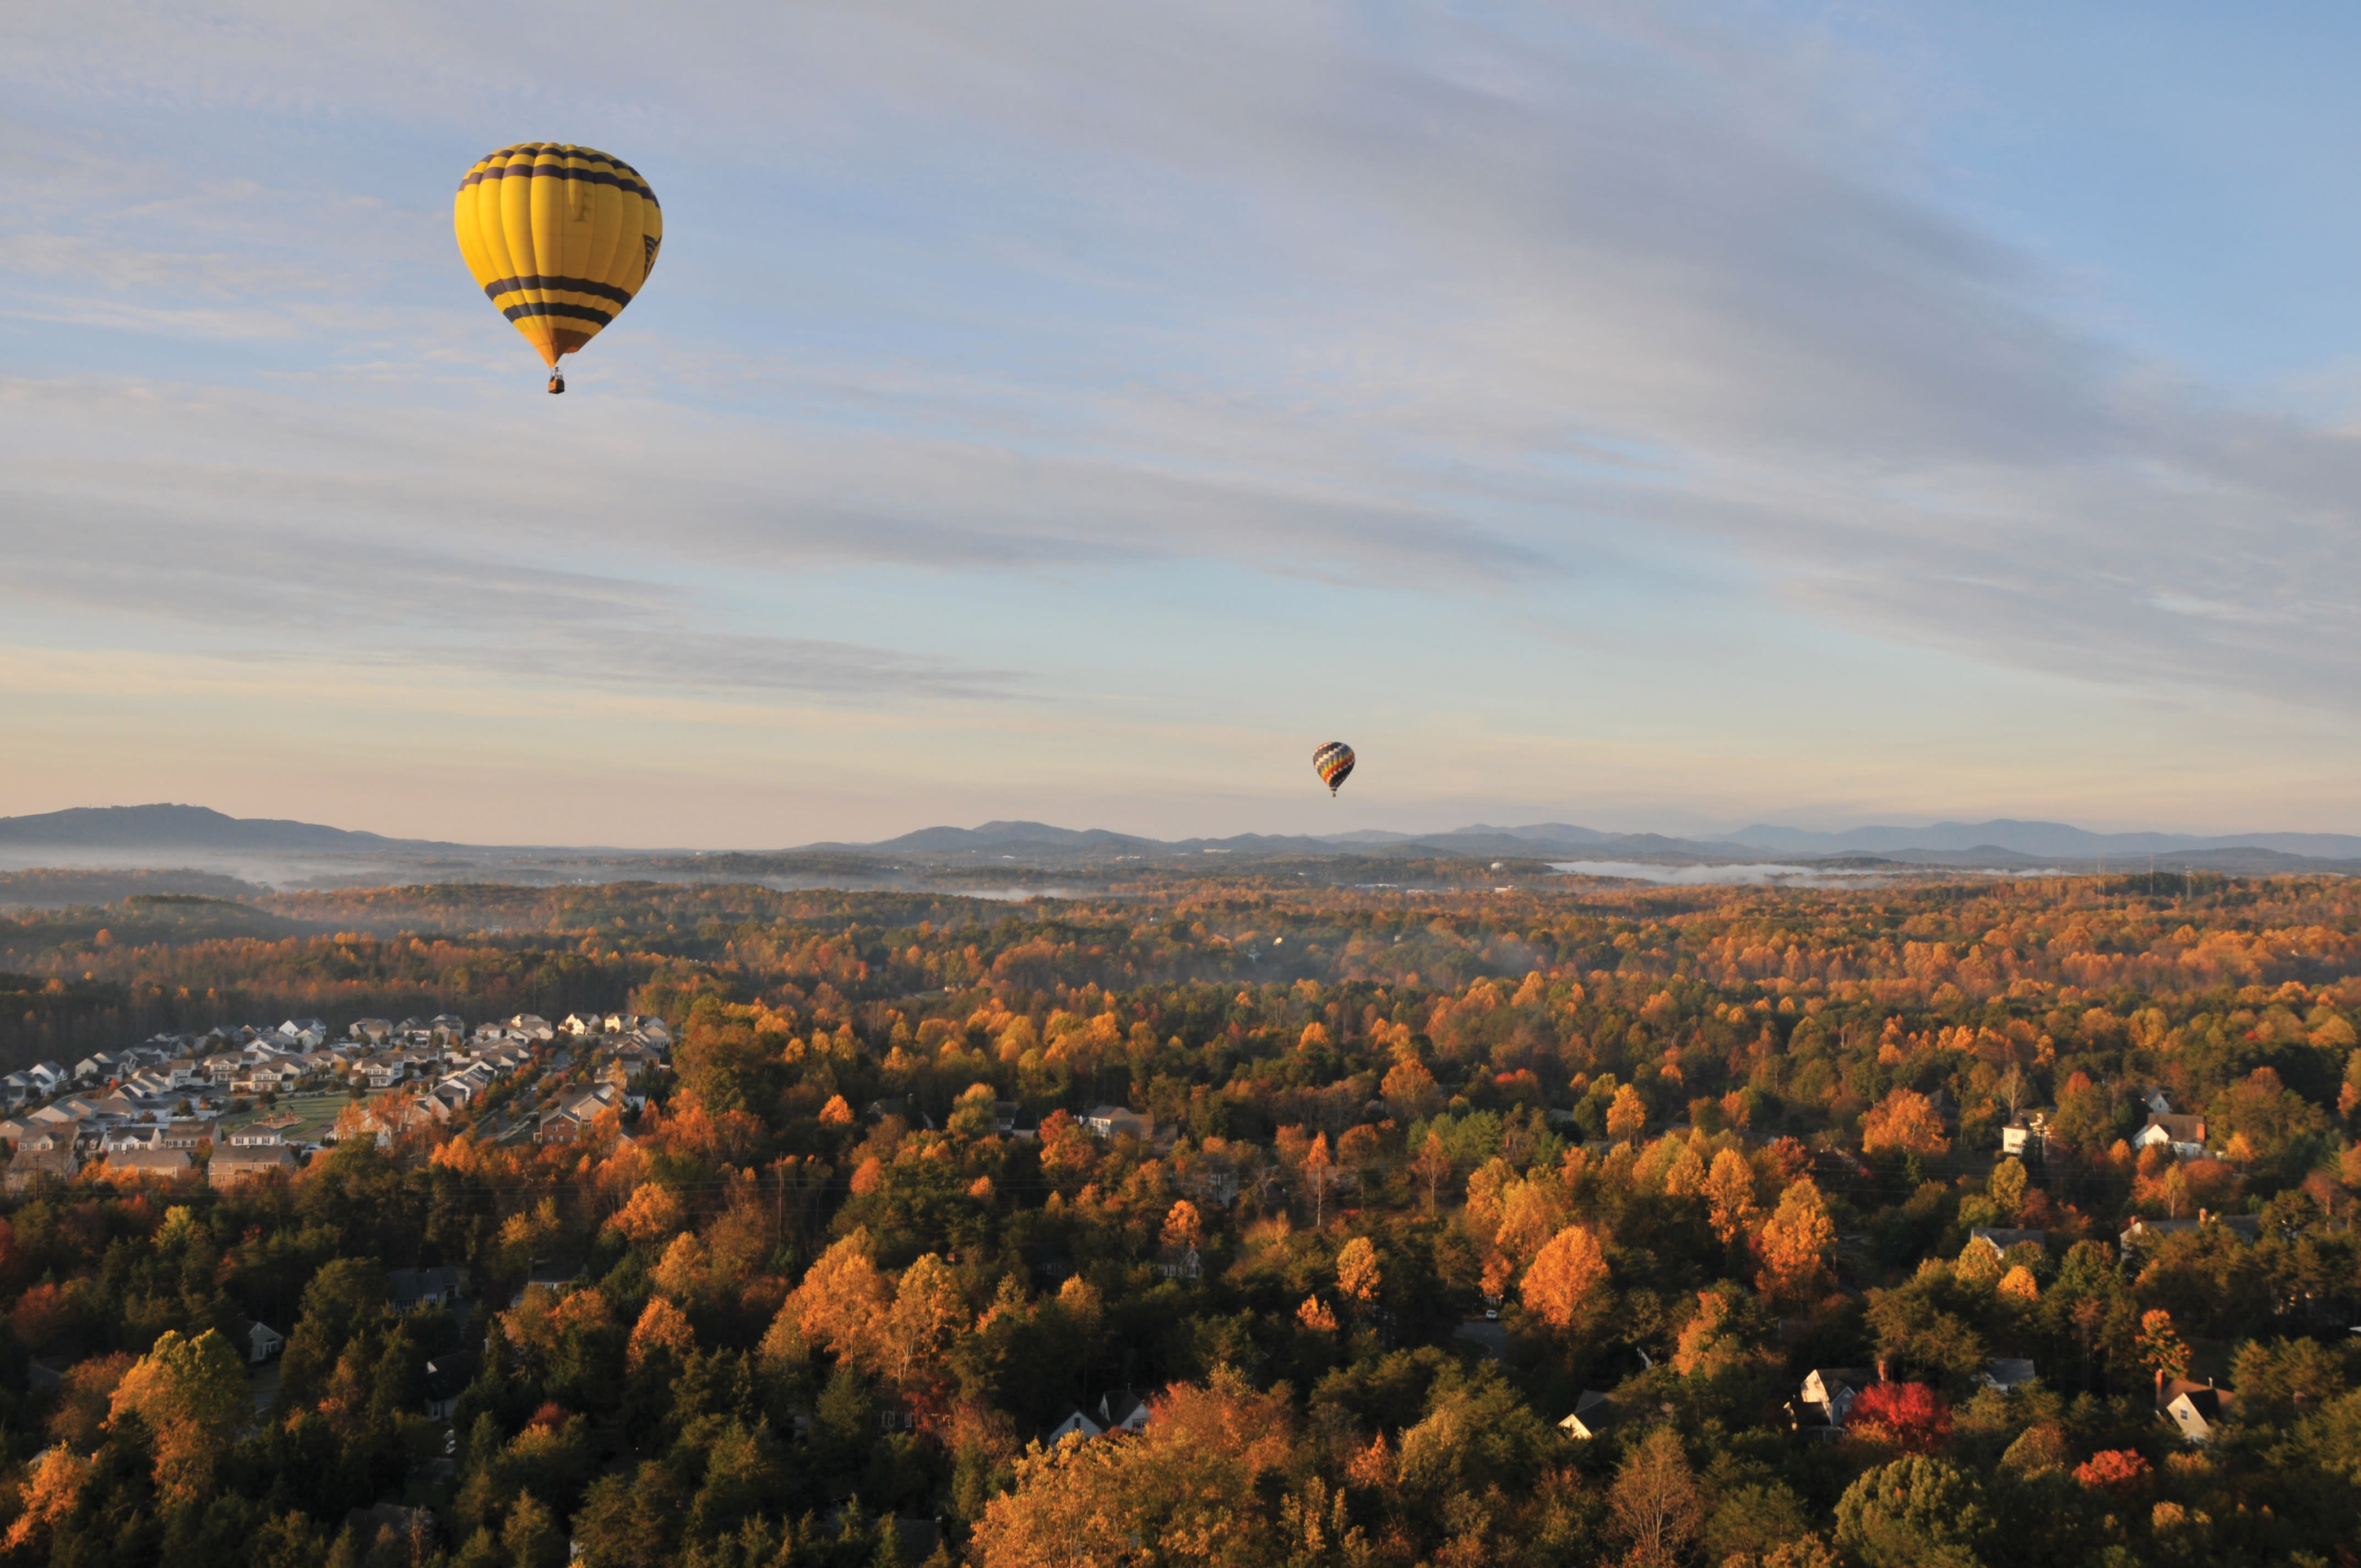 Ballooning over Albemarle County. (Photo: Theresa White)